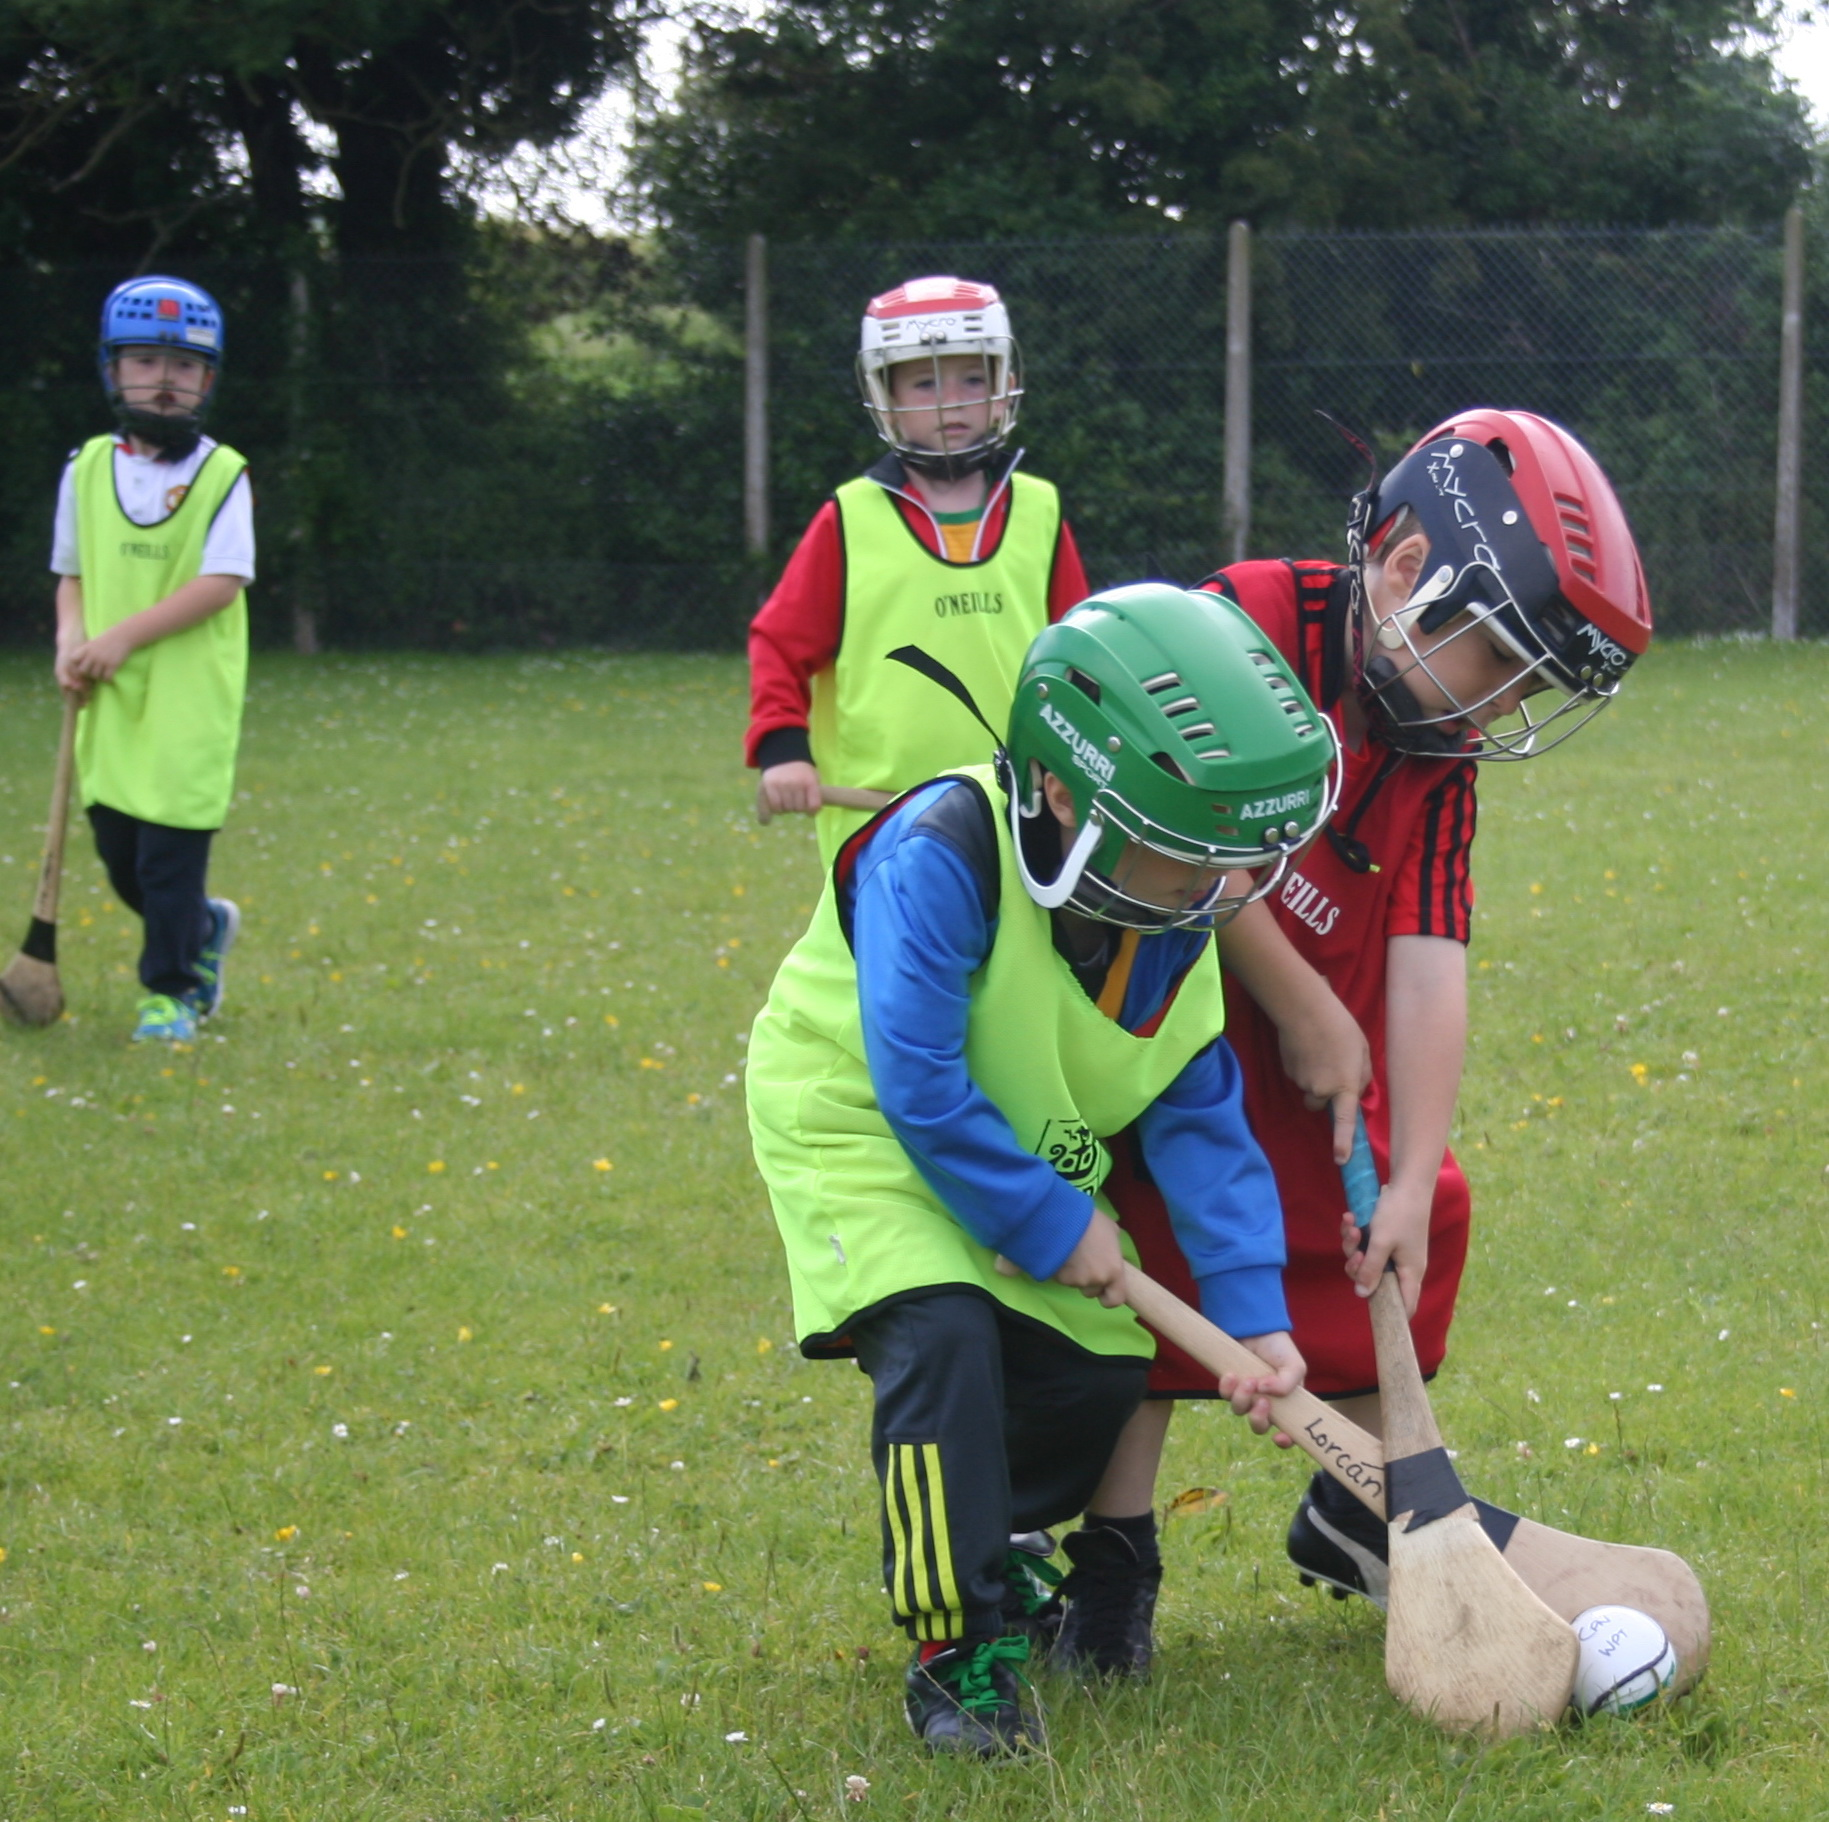 Summer Hurling/Camogie Camp